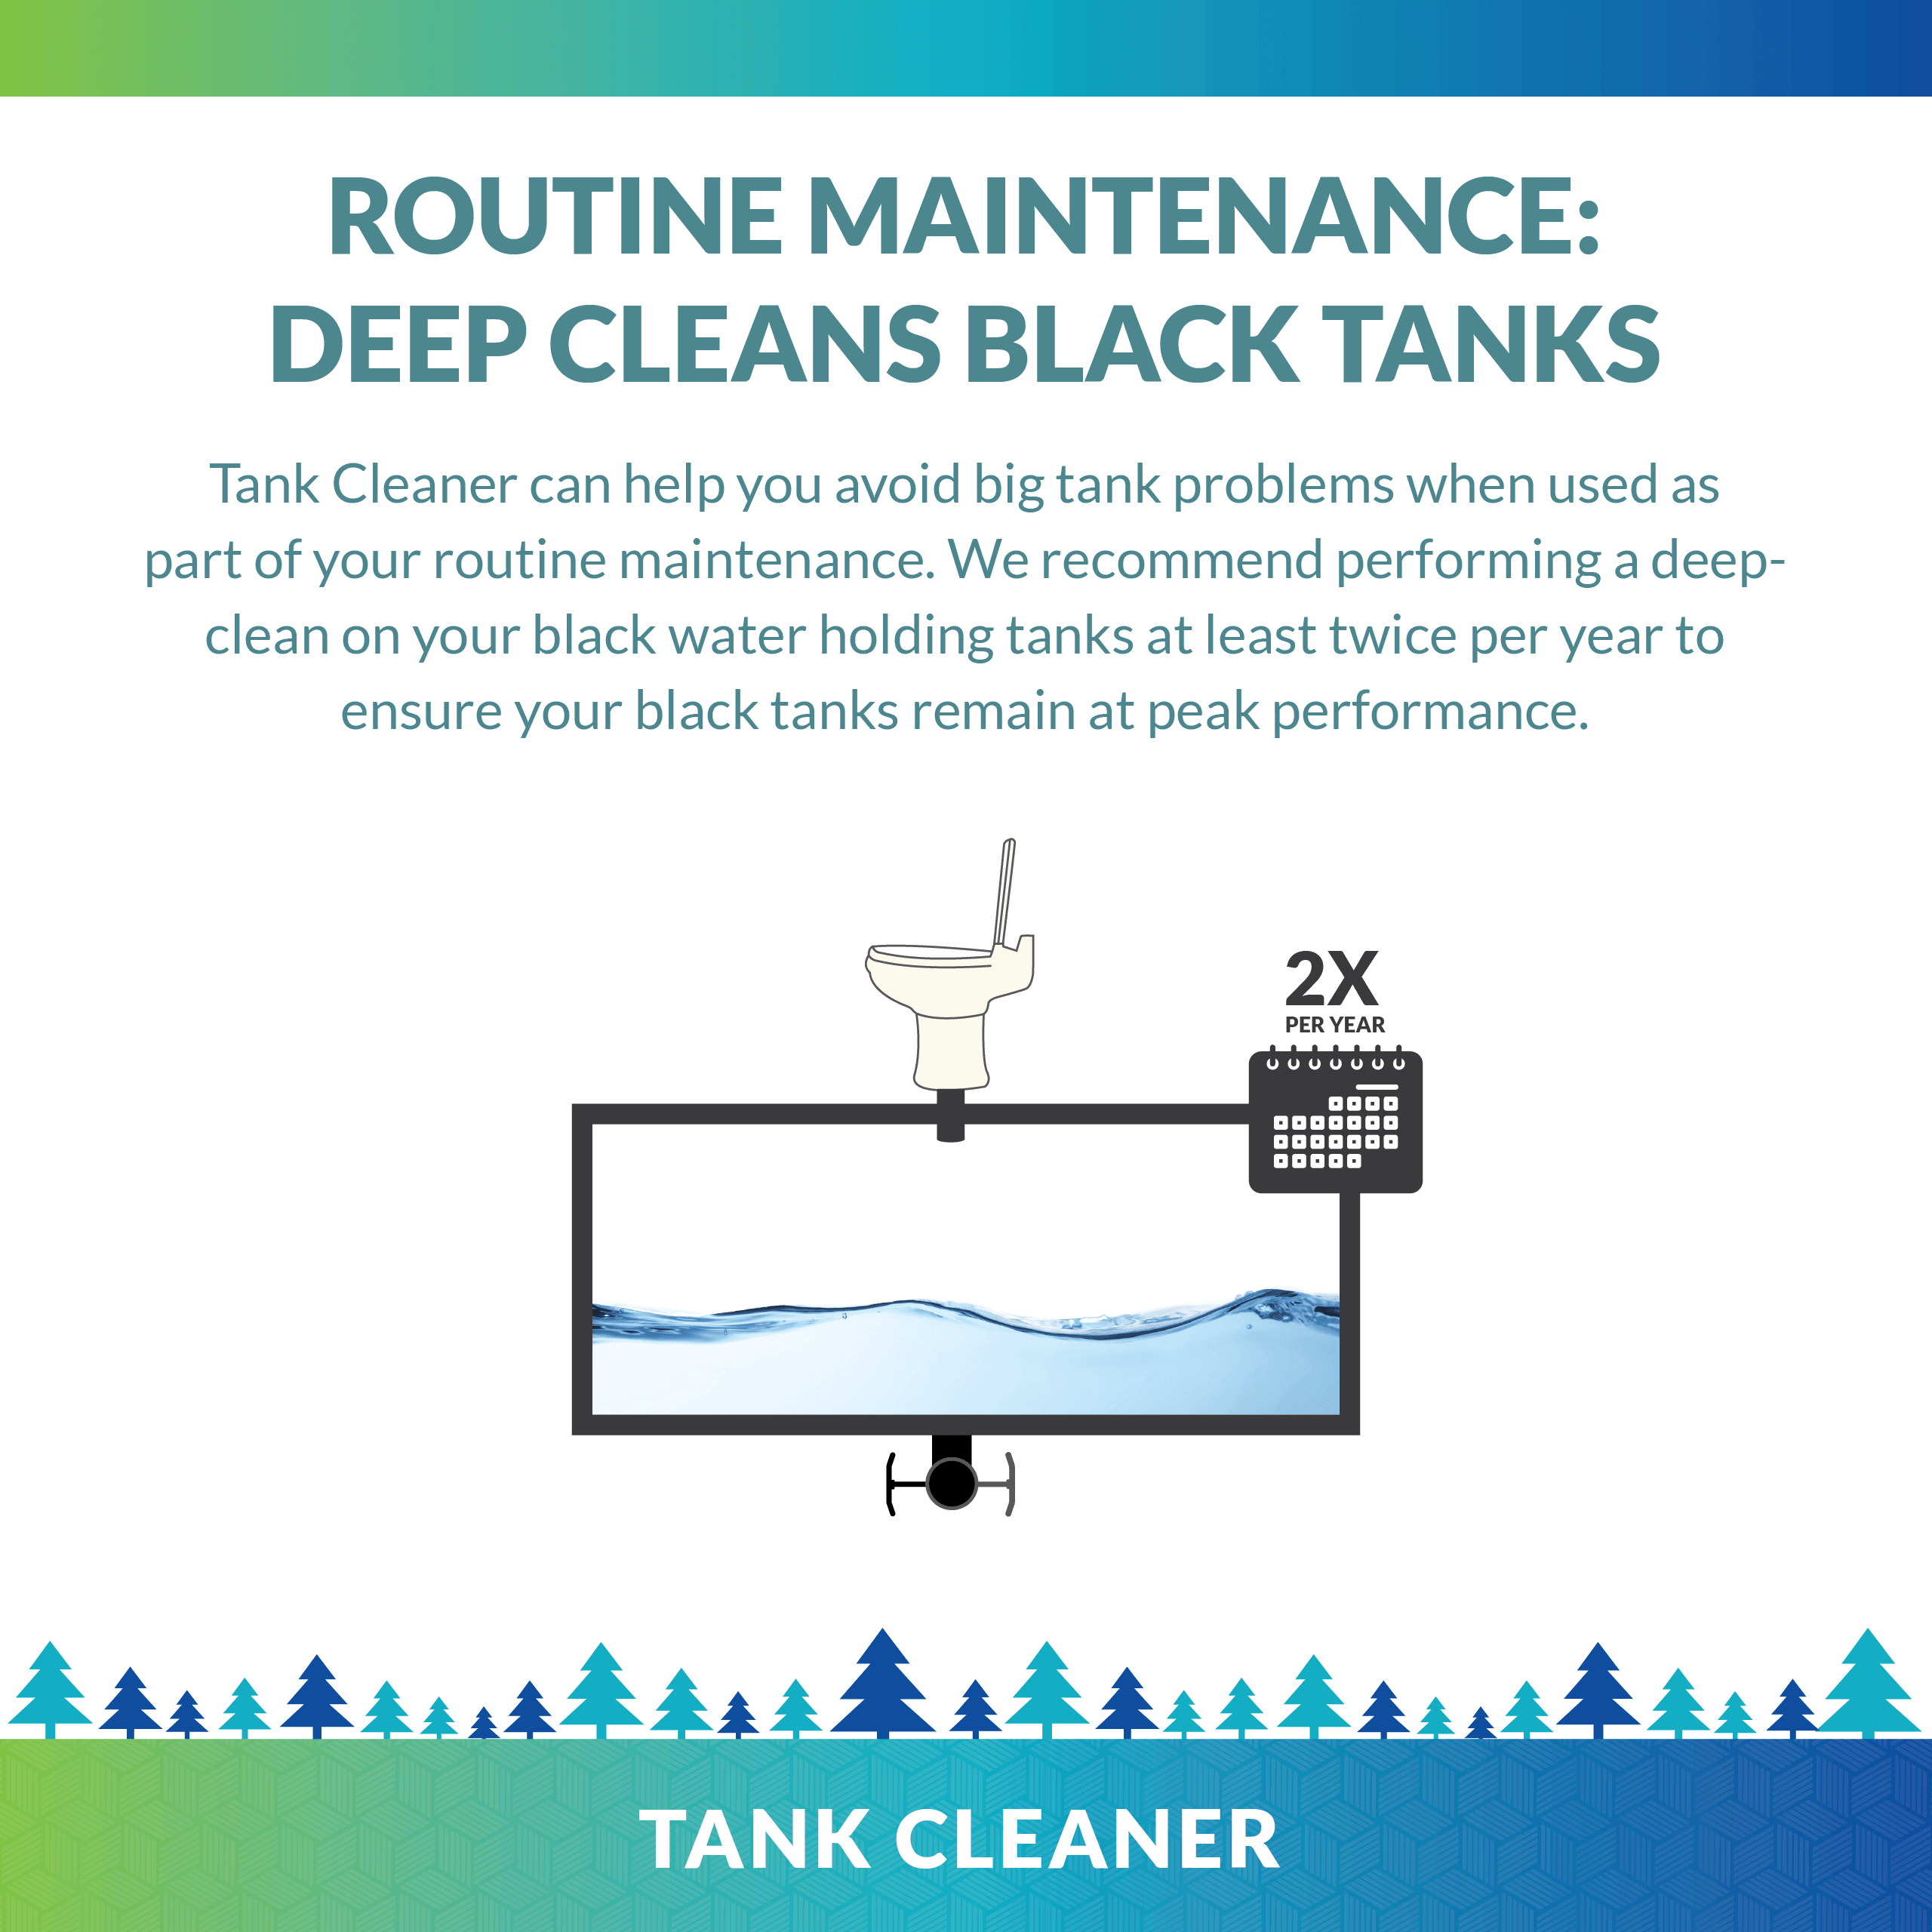 Routine treatment creates healthy holding tanks. Prevent clogs and residue. Unique Camping + Marine